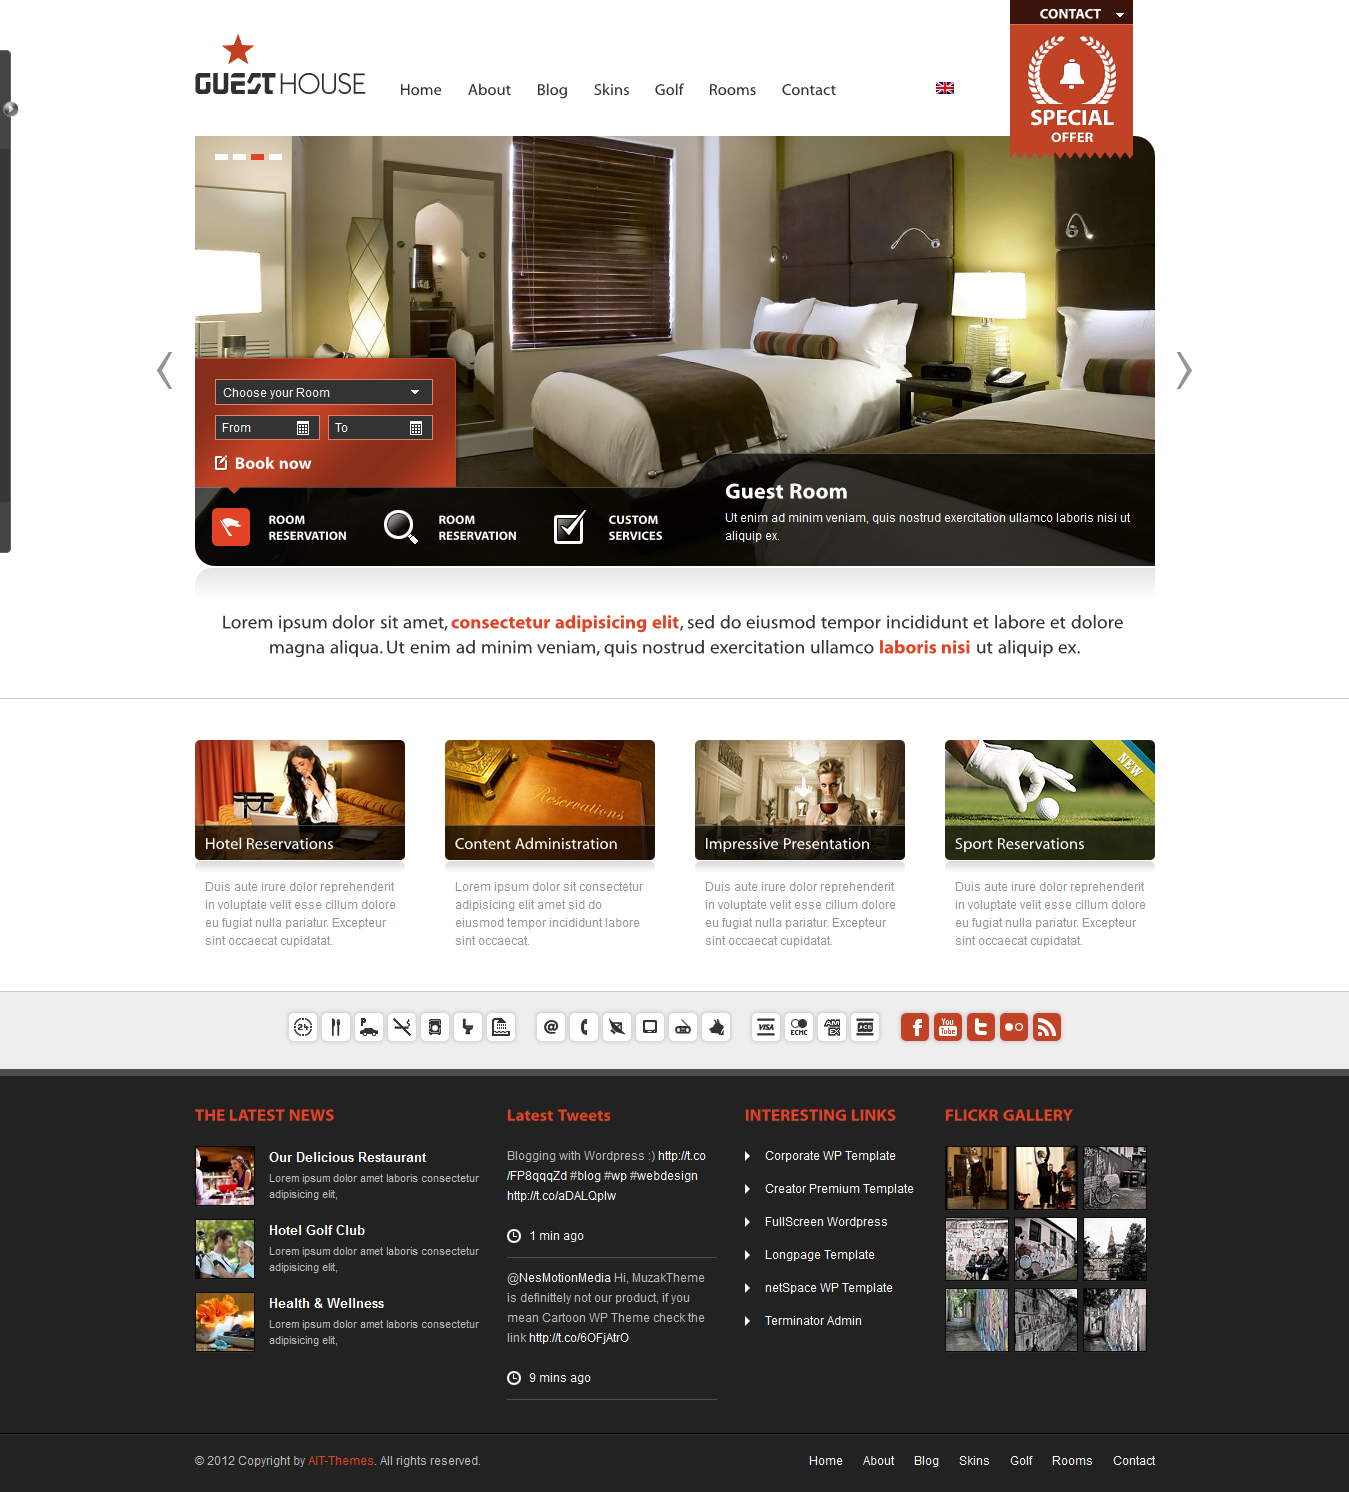 guesthouse-screenshot-wp-redone